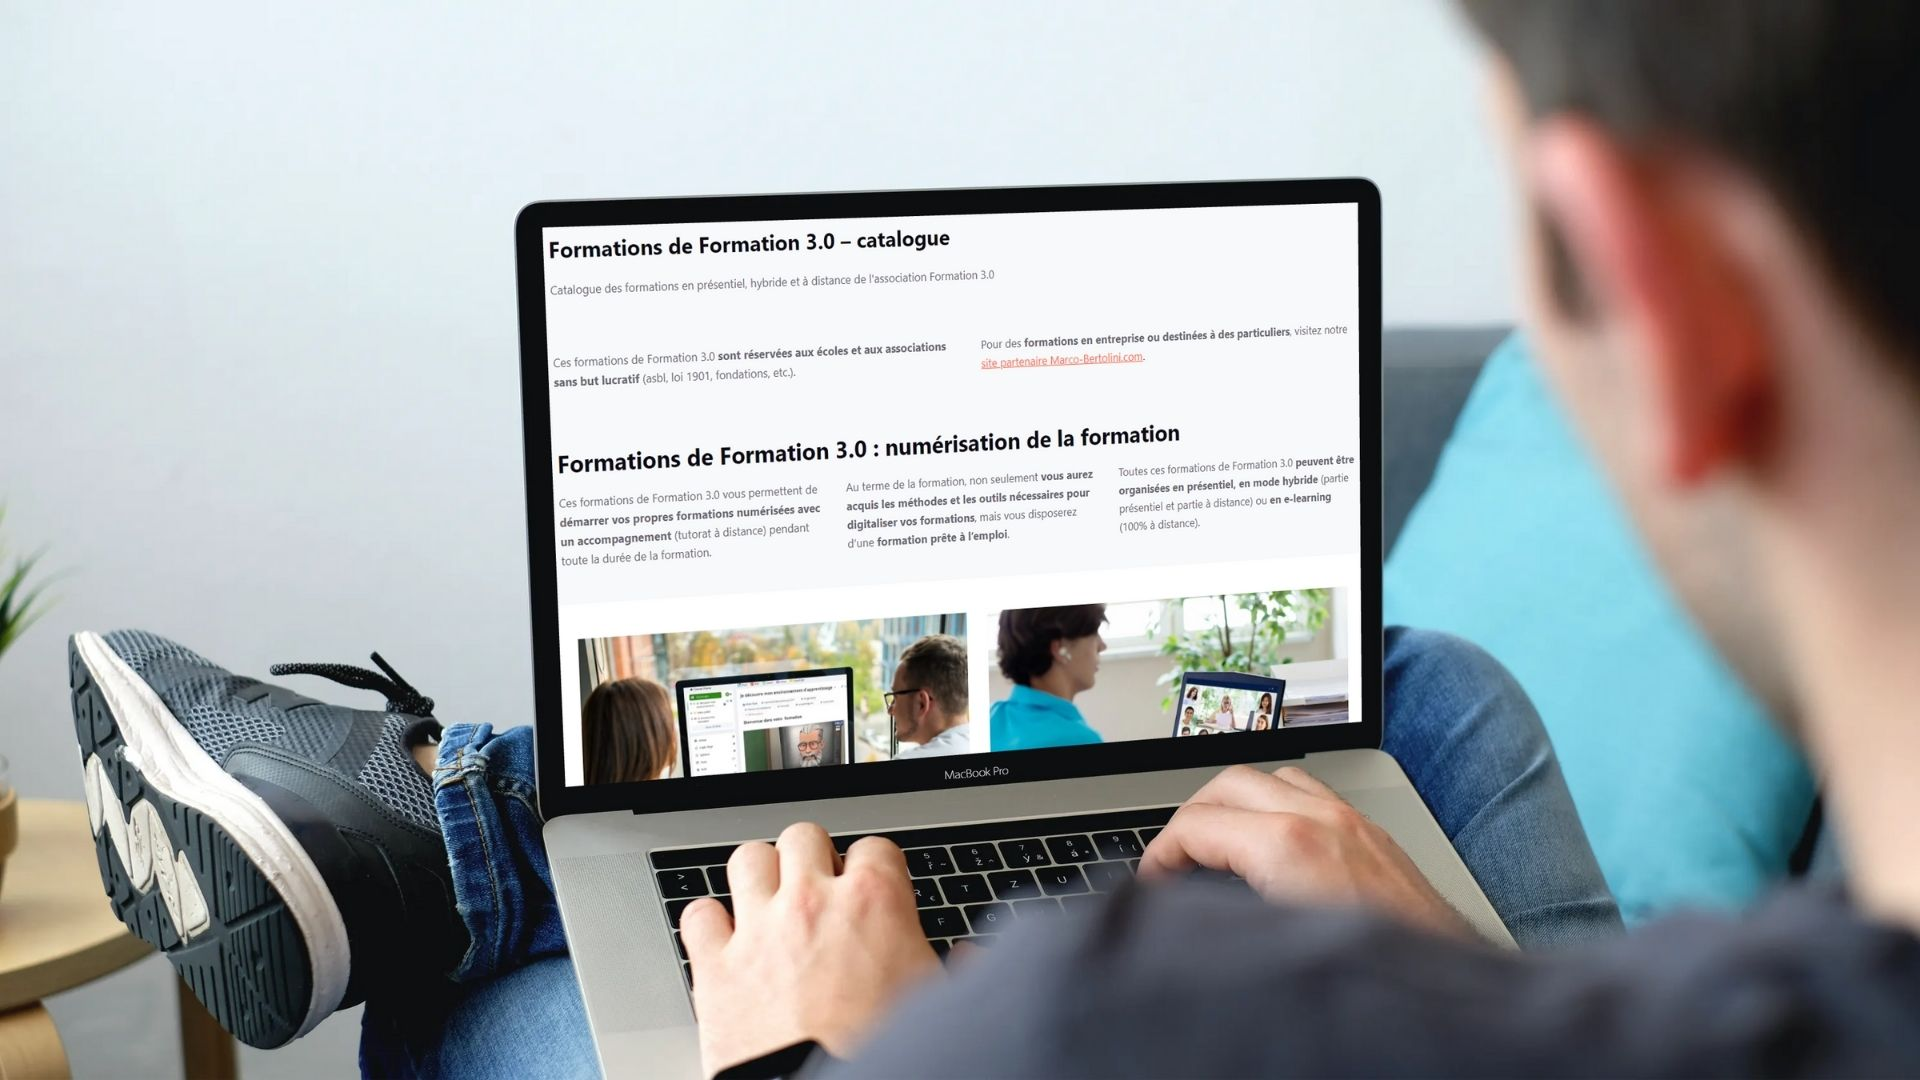 Formations de Formation 3.0 - le catalogue complet